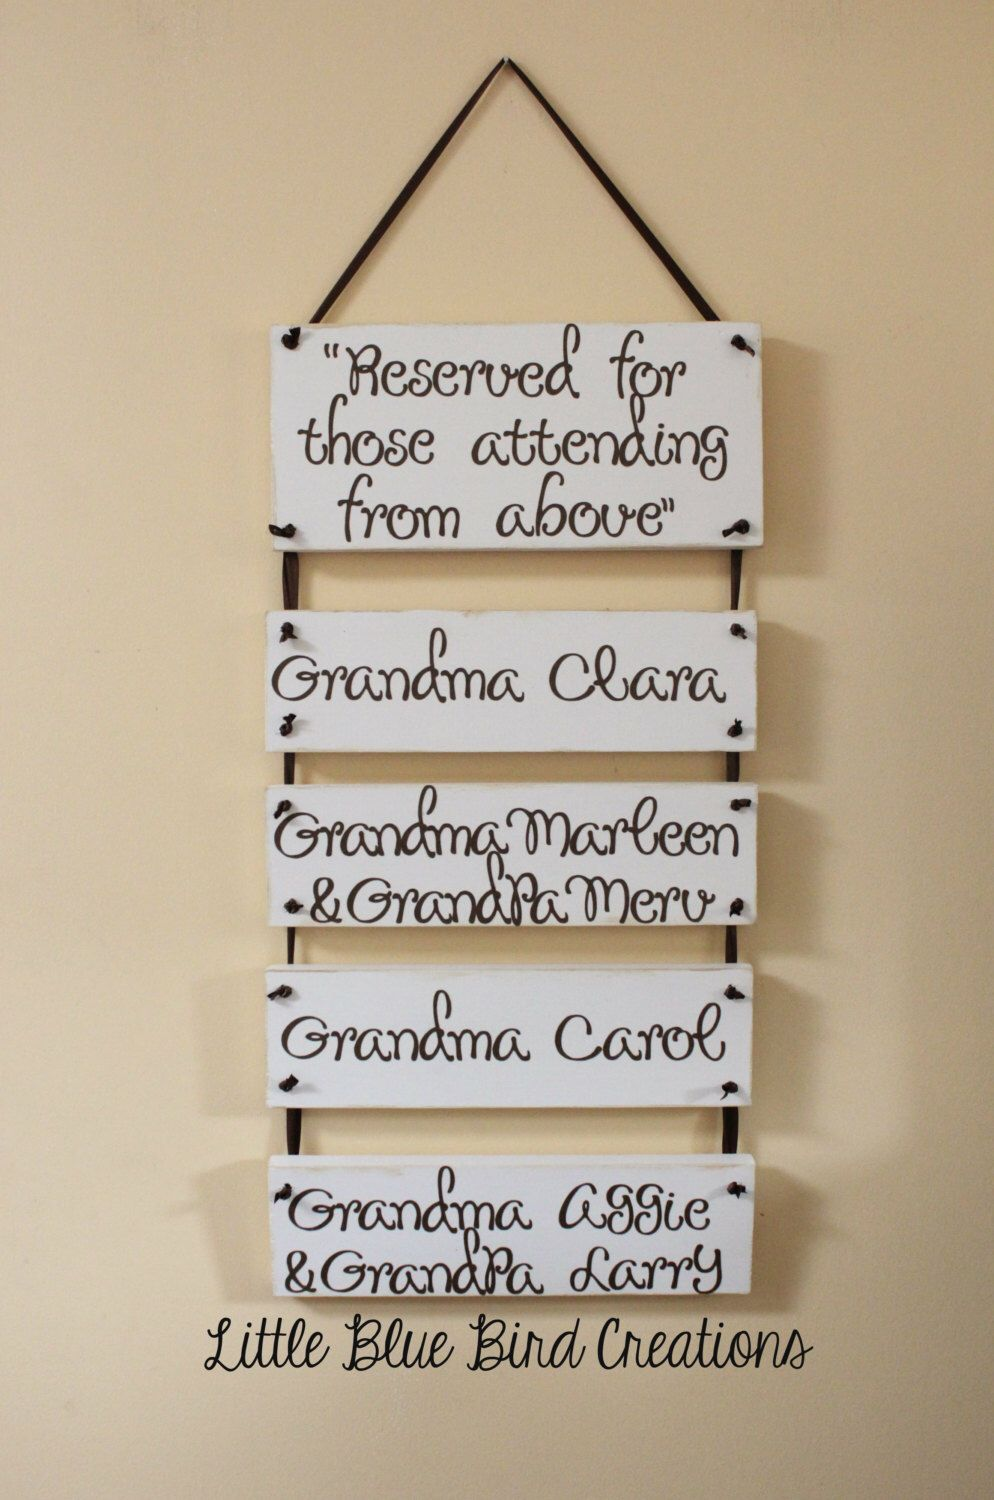 Wedding Decor Signs Delectable Reserved For Those Attending From Above Wooden Wedding Decor Sign 2018